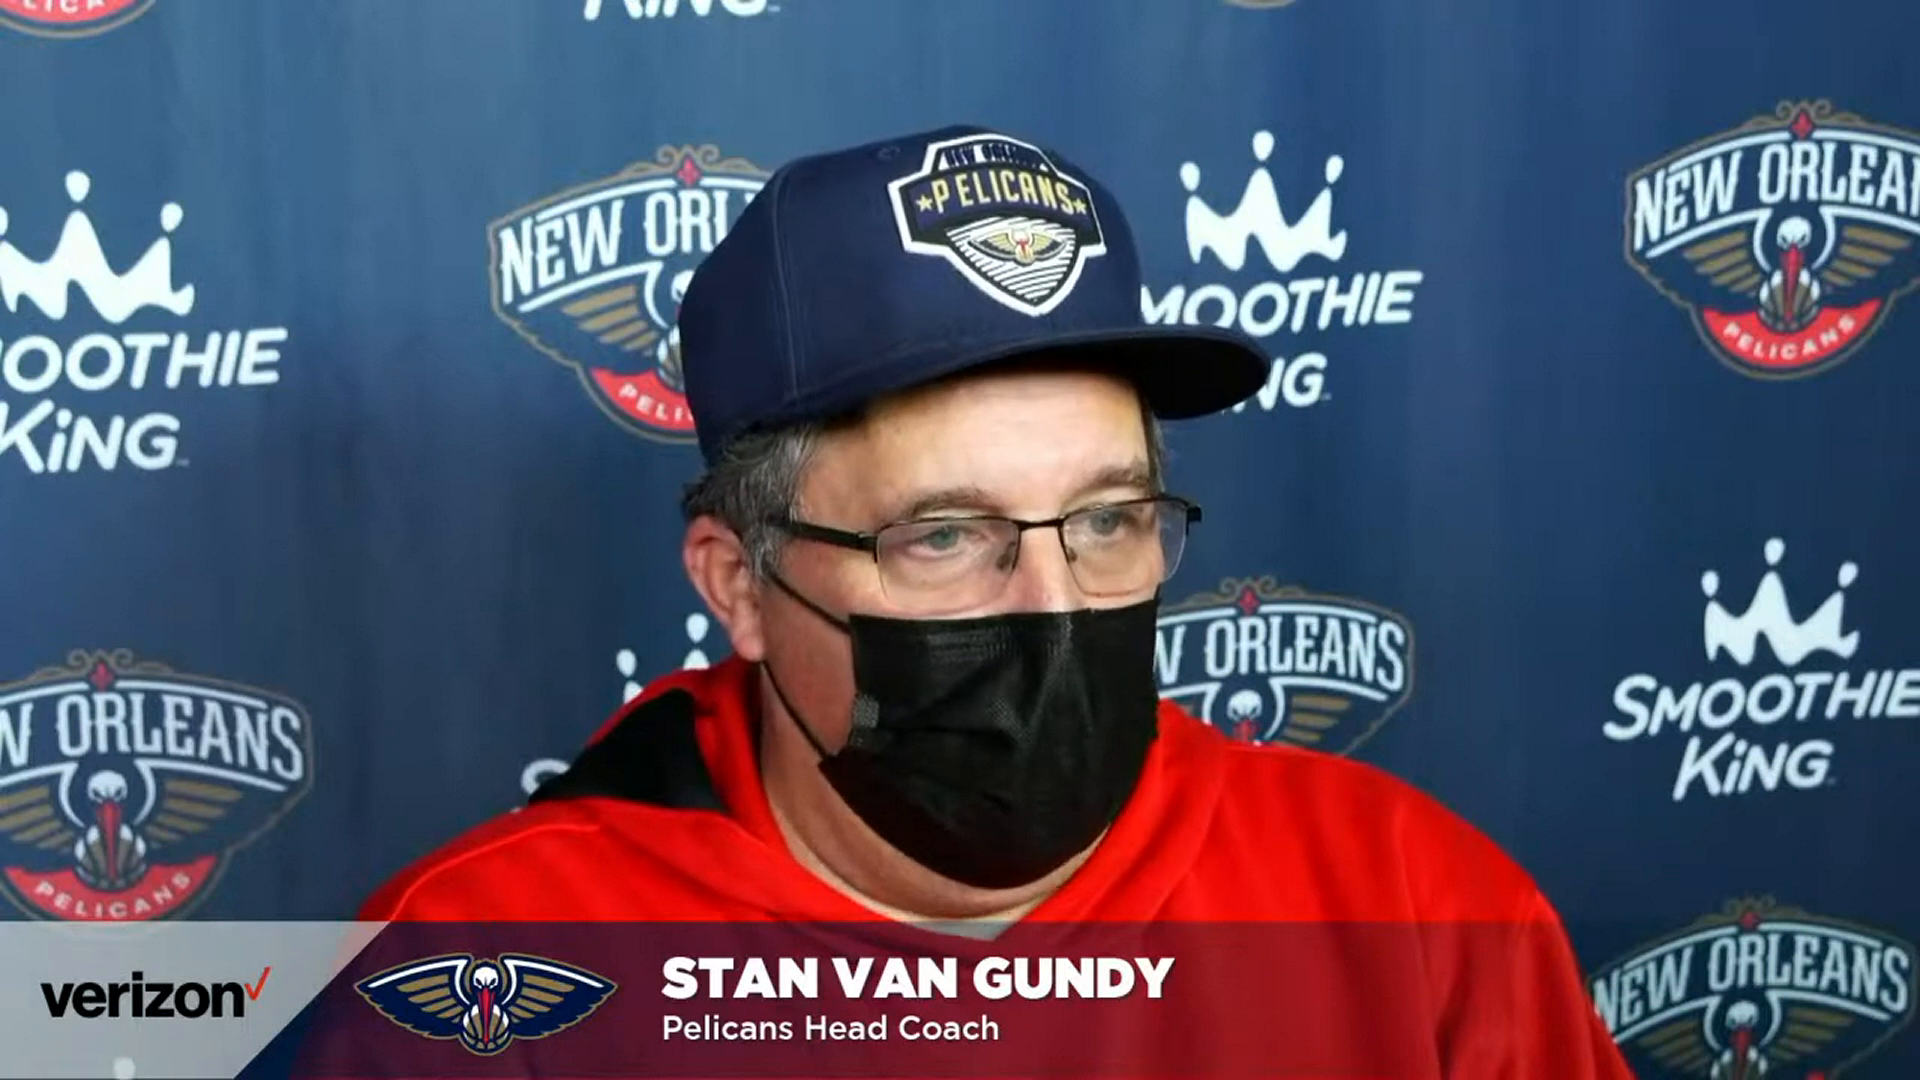 Stan Van Gundy talks playing at a consistent level and improving defensively | Pelicans Post-Practice 3/2/21